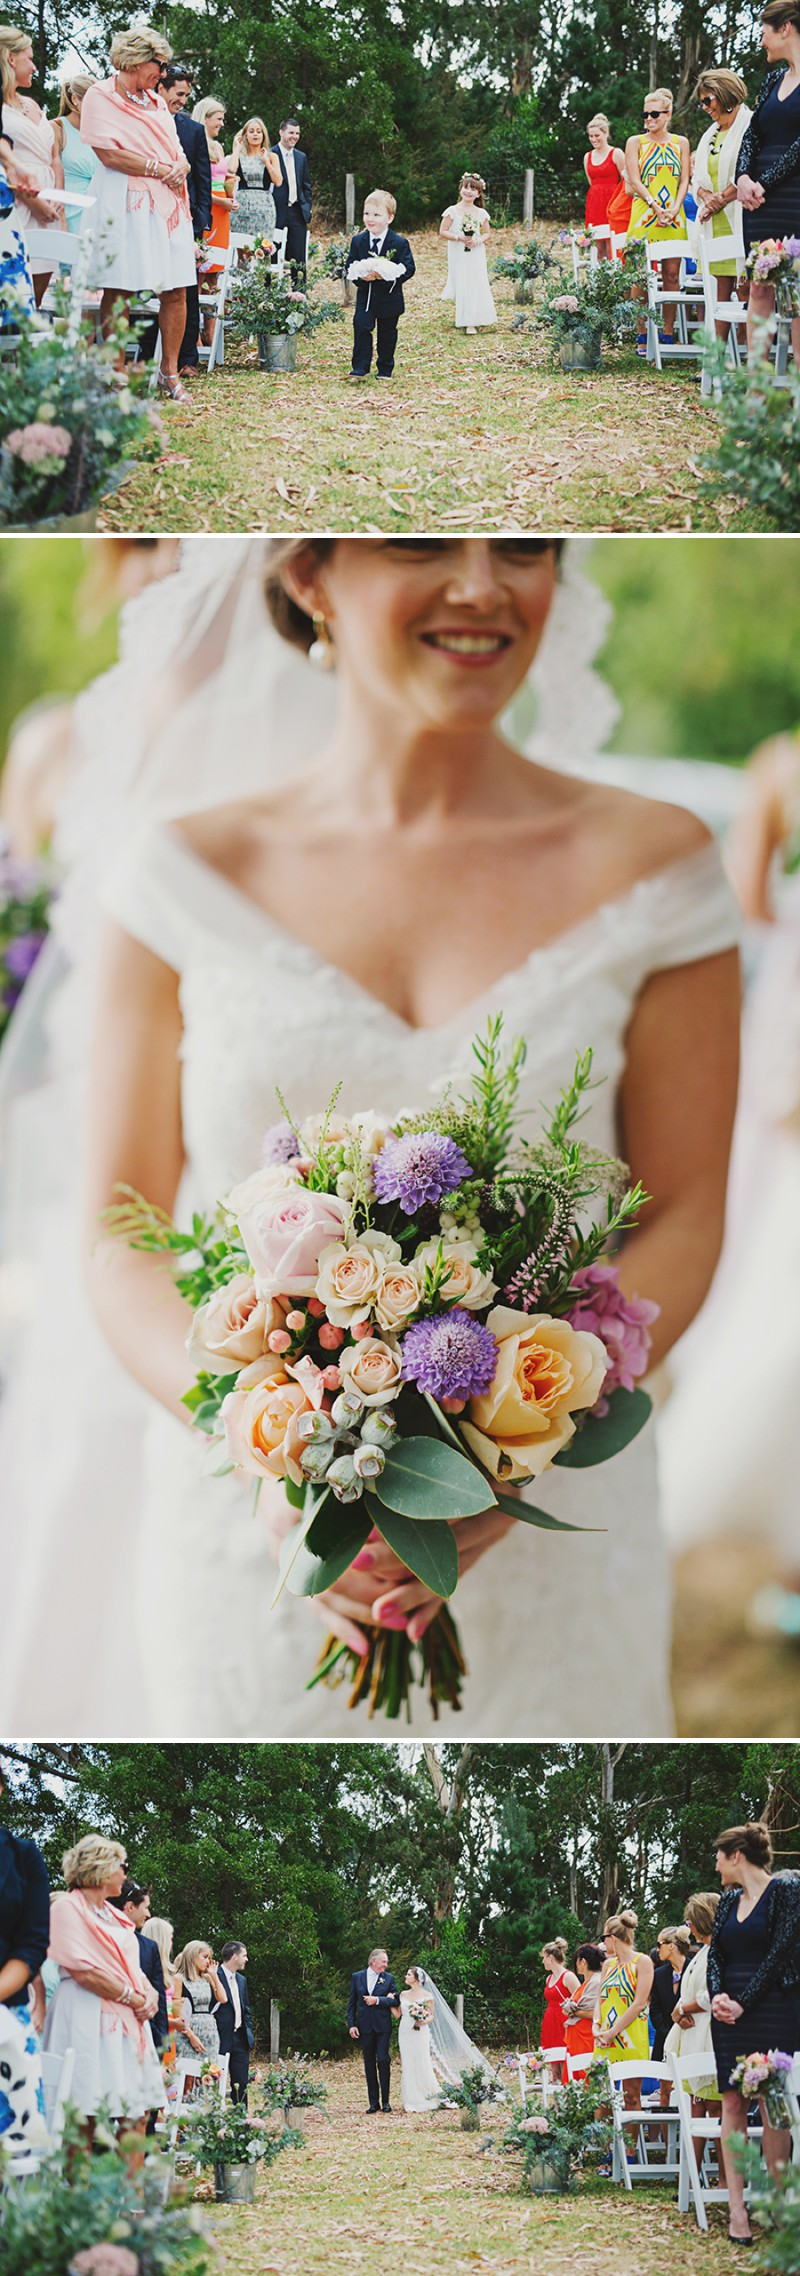 A Rustic And Beautiful Destination Wedding At Red Hill Estate in Australia With A Collette Dinnigan Dress With An Outdoor Ceremony And A Handpicked Rose Bouquet Photographed By Jonathan Ong._0004